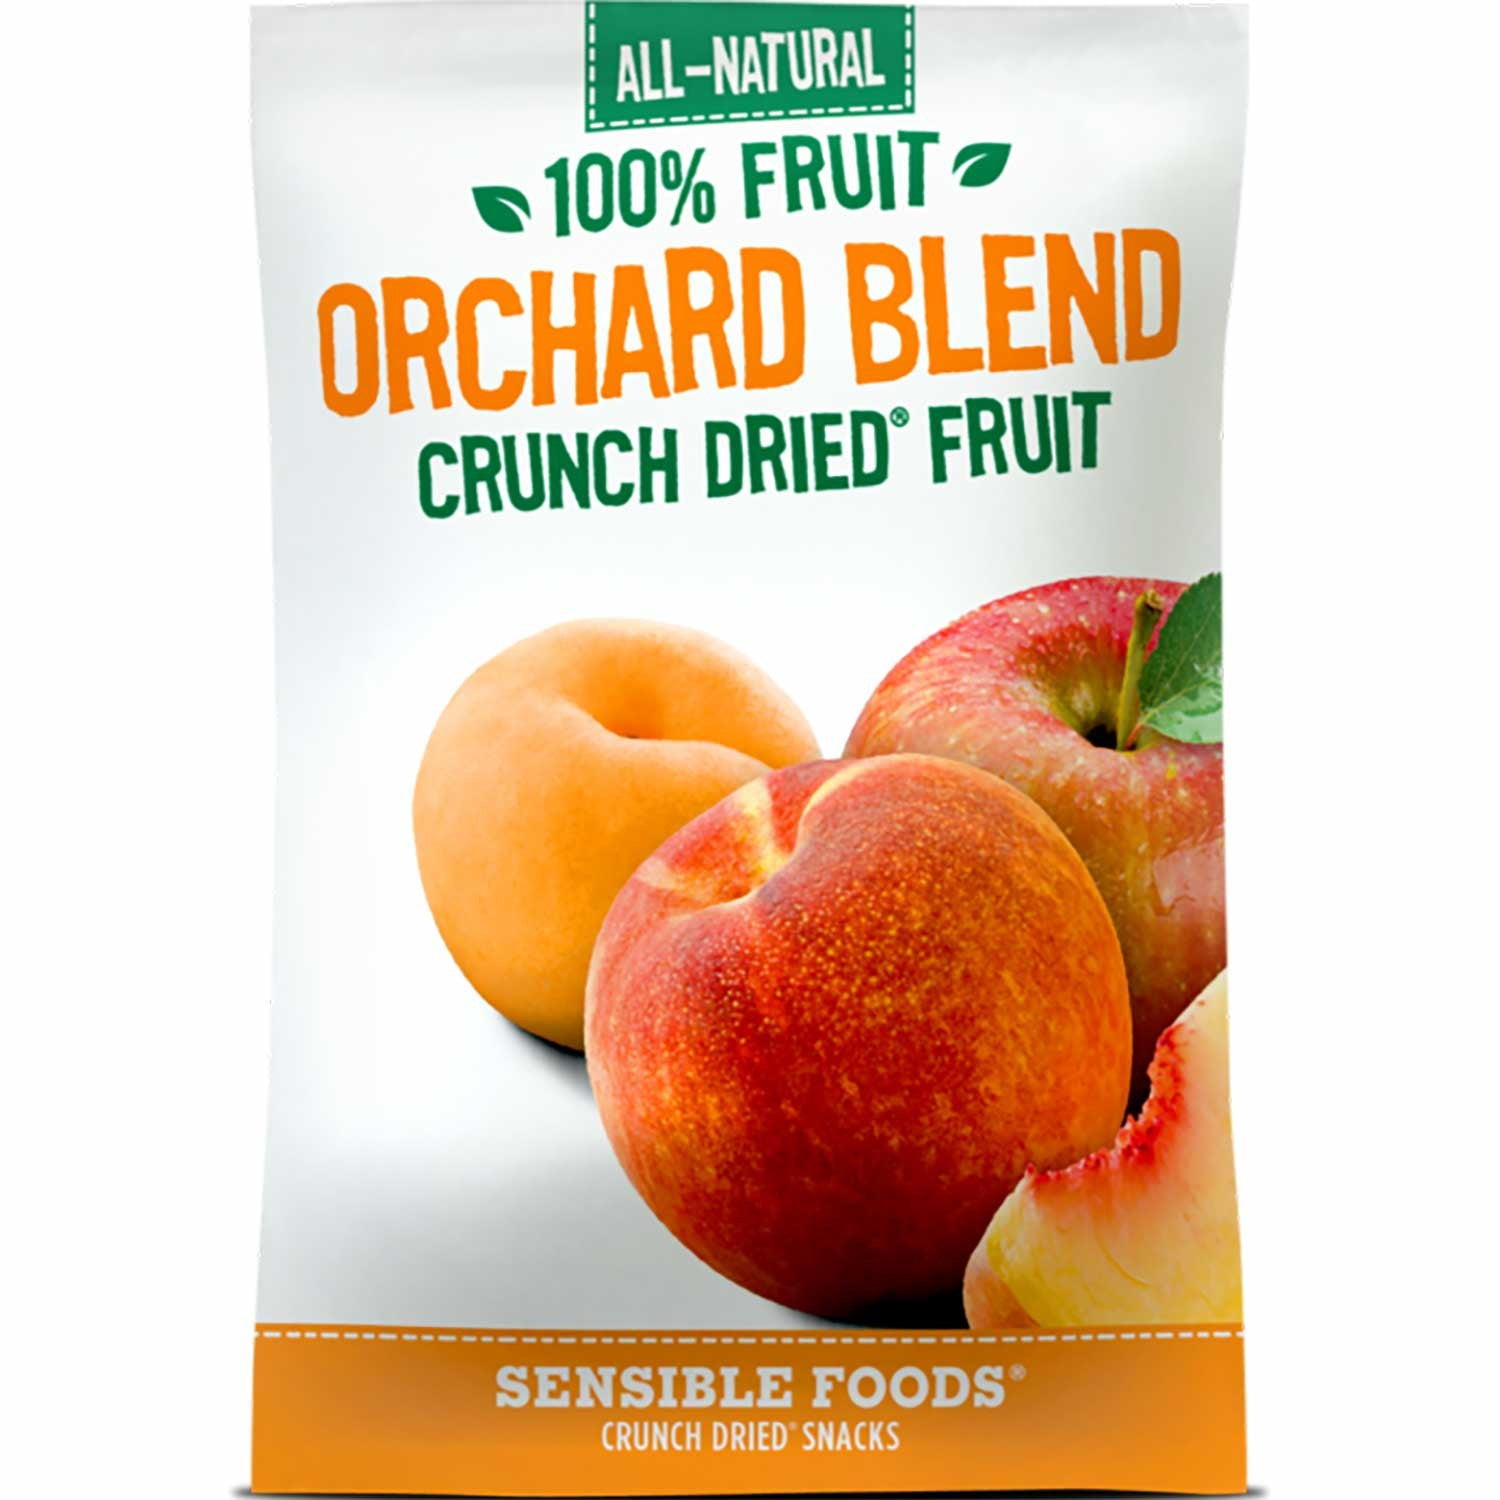 Sensible Foods All-Natural 100% Fruit Orchard Blend Crunch Dried Fruit, 9g.-NaturesWisdom